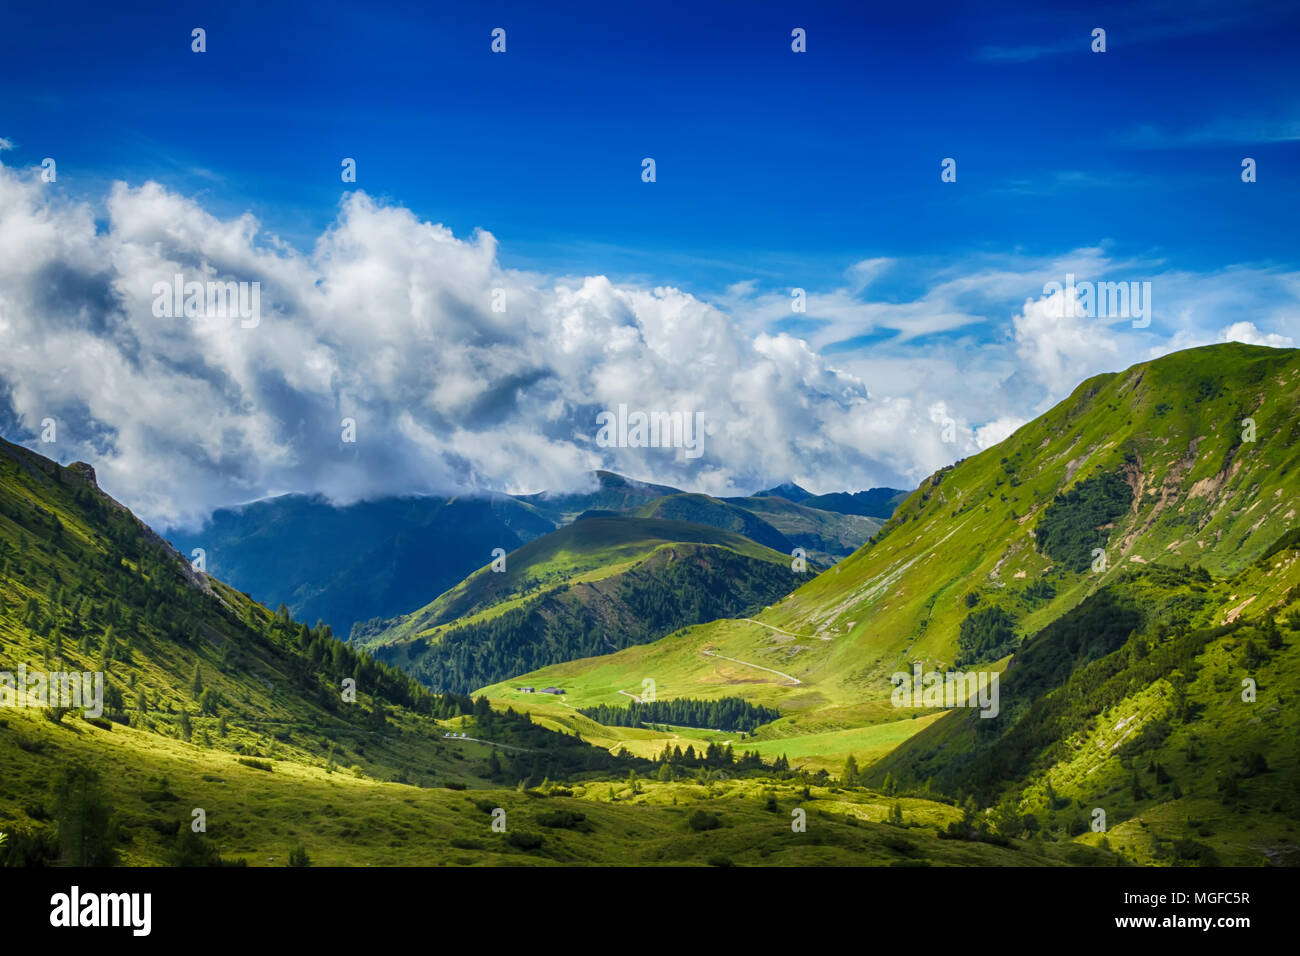 Beautyfull mountain landscape. Alps montains in Bagolino, province of Brescia, Italy. Stock Photo